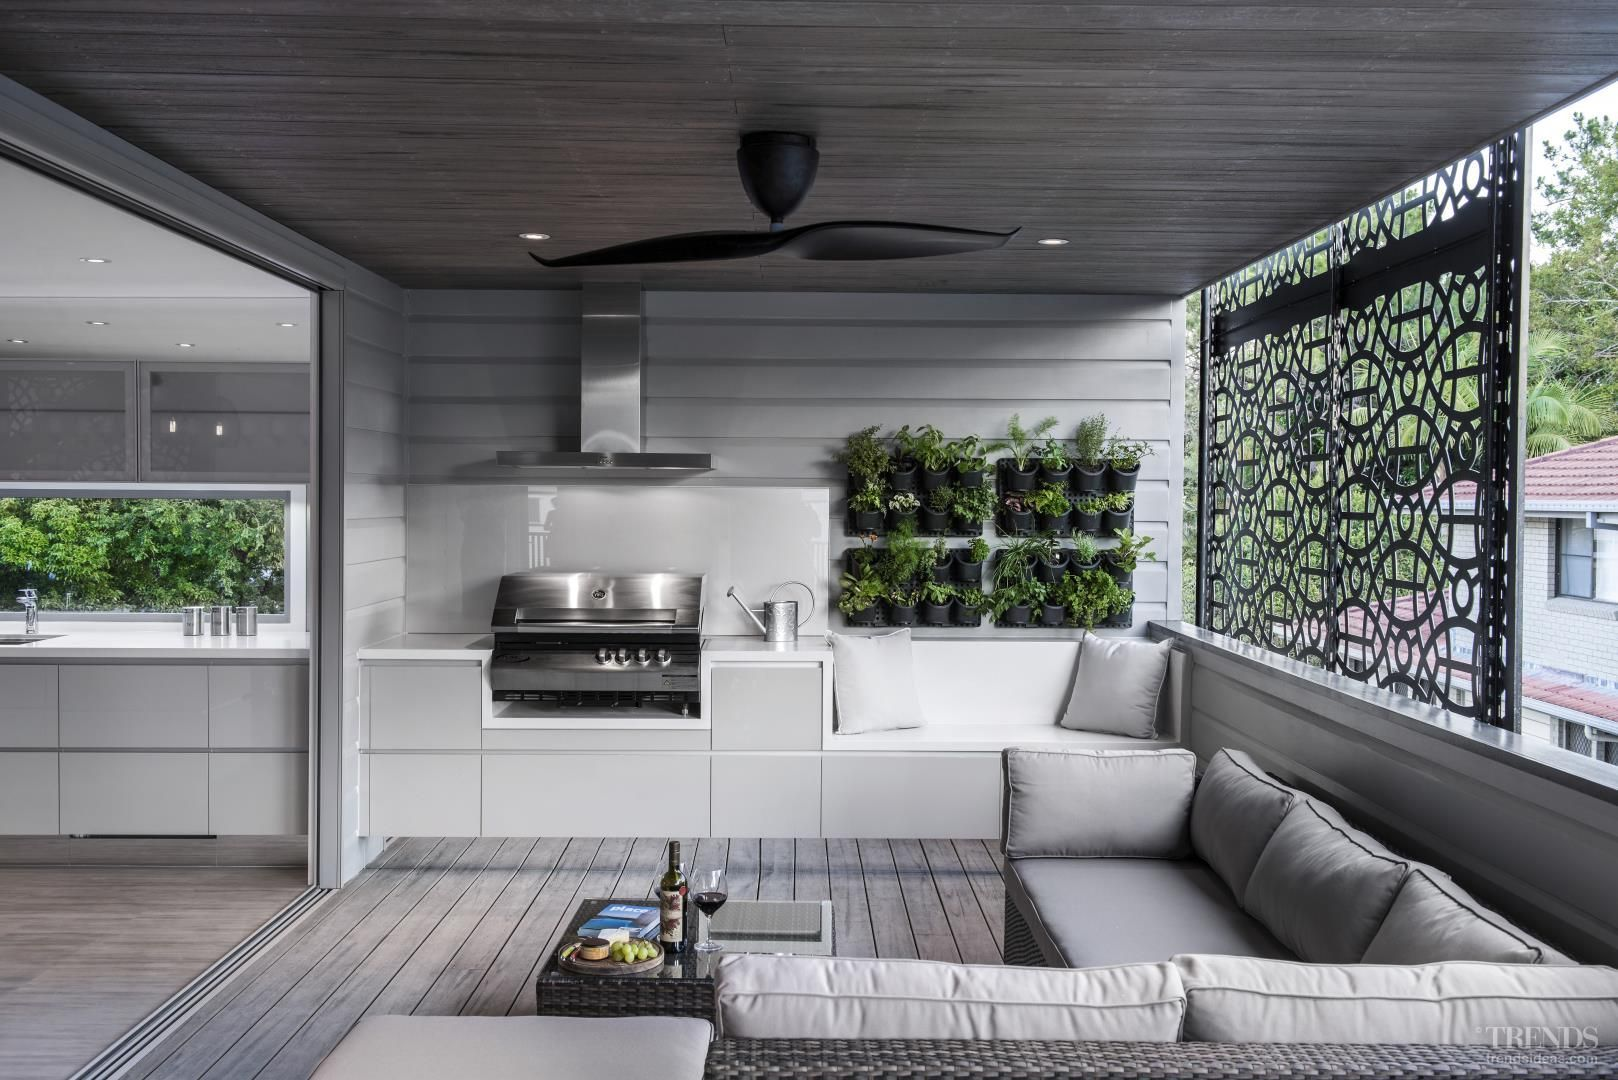 Outdoor living design with bbq area from a real australian home - Outdoor Living Design With Bbq Area From A Real Australian Home Outdoor Living Photo 7719457 Home Outdoor Area Pinterest Outdoor Living